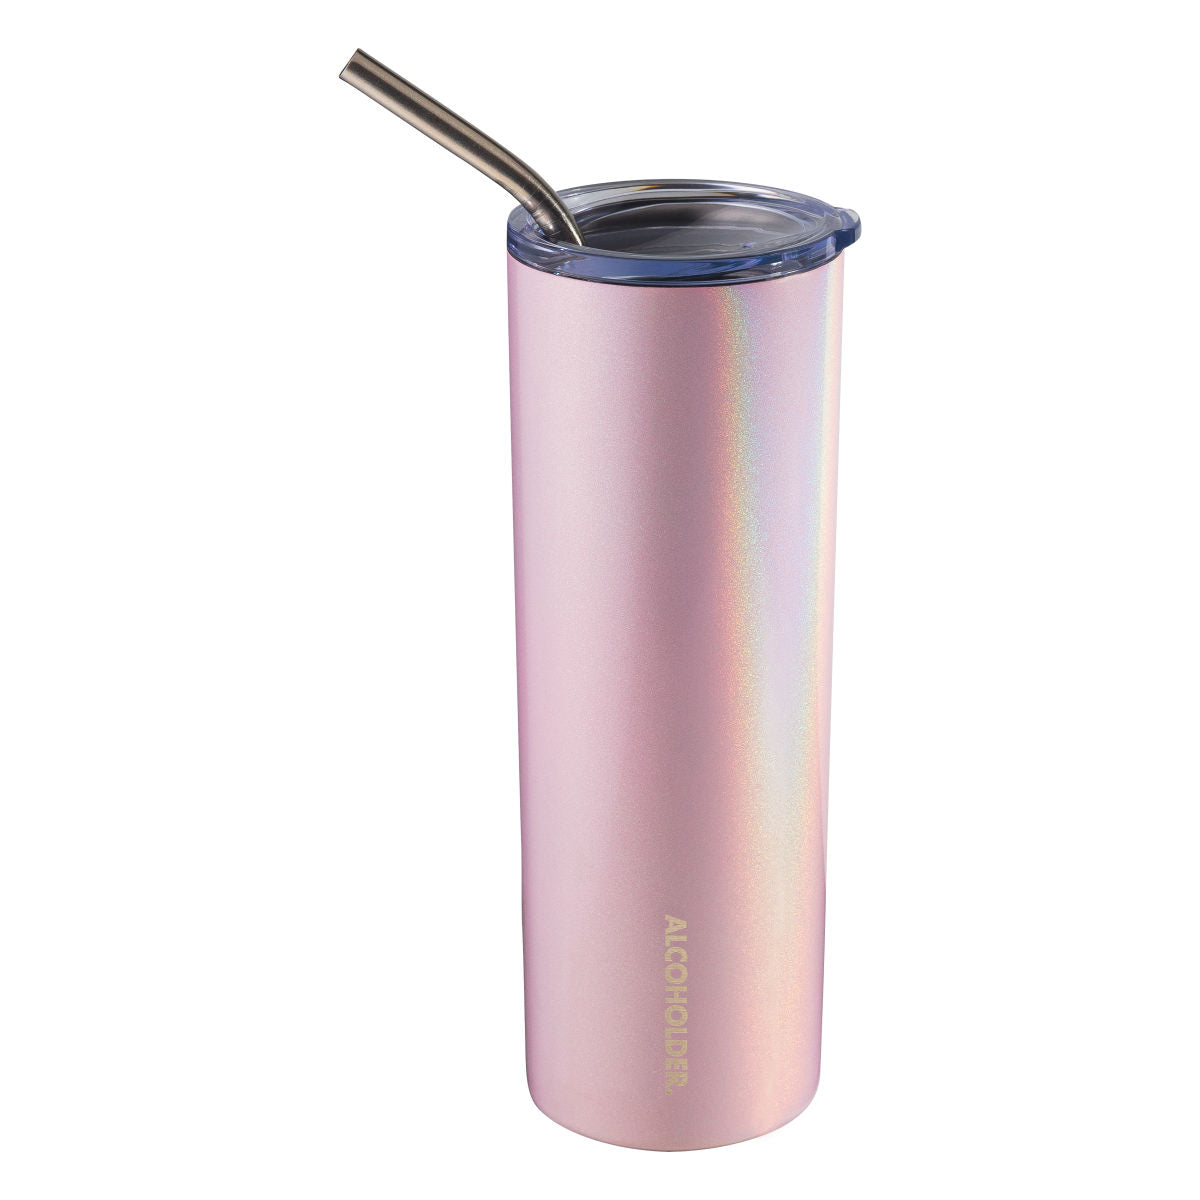 SKNY Slim Vacuum Insulated Tumbler - 590mL -Blush Pink (Glitter)